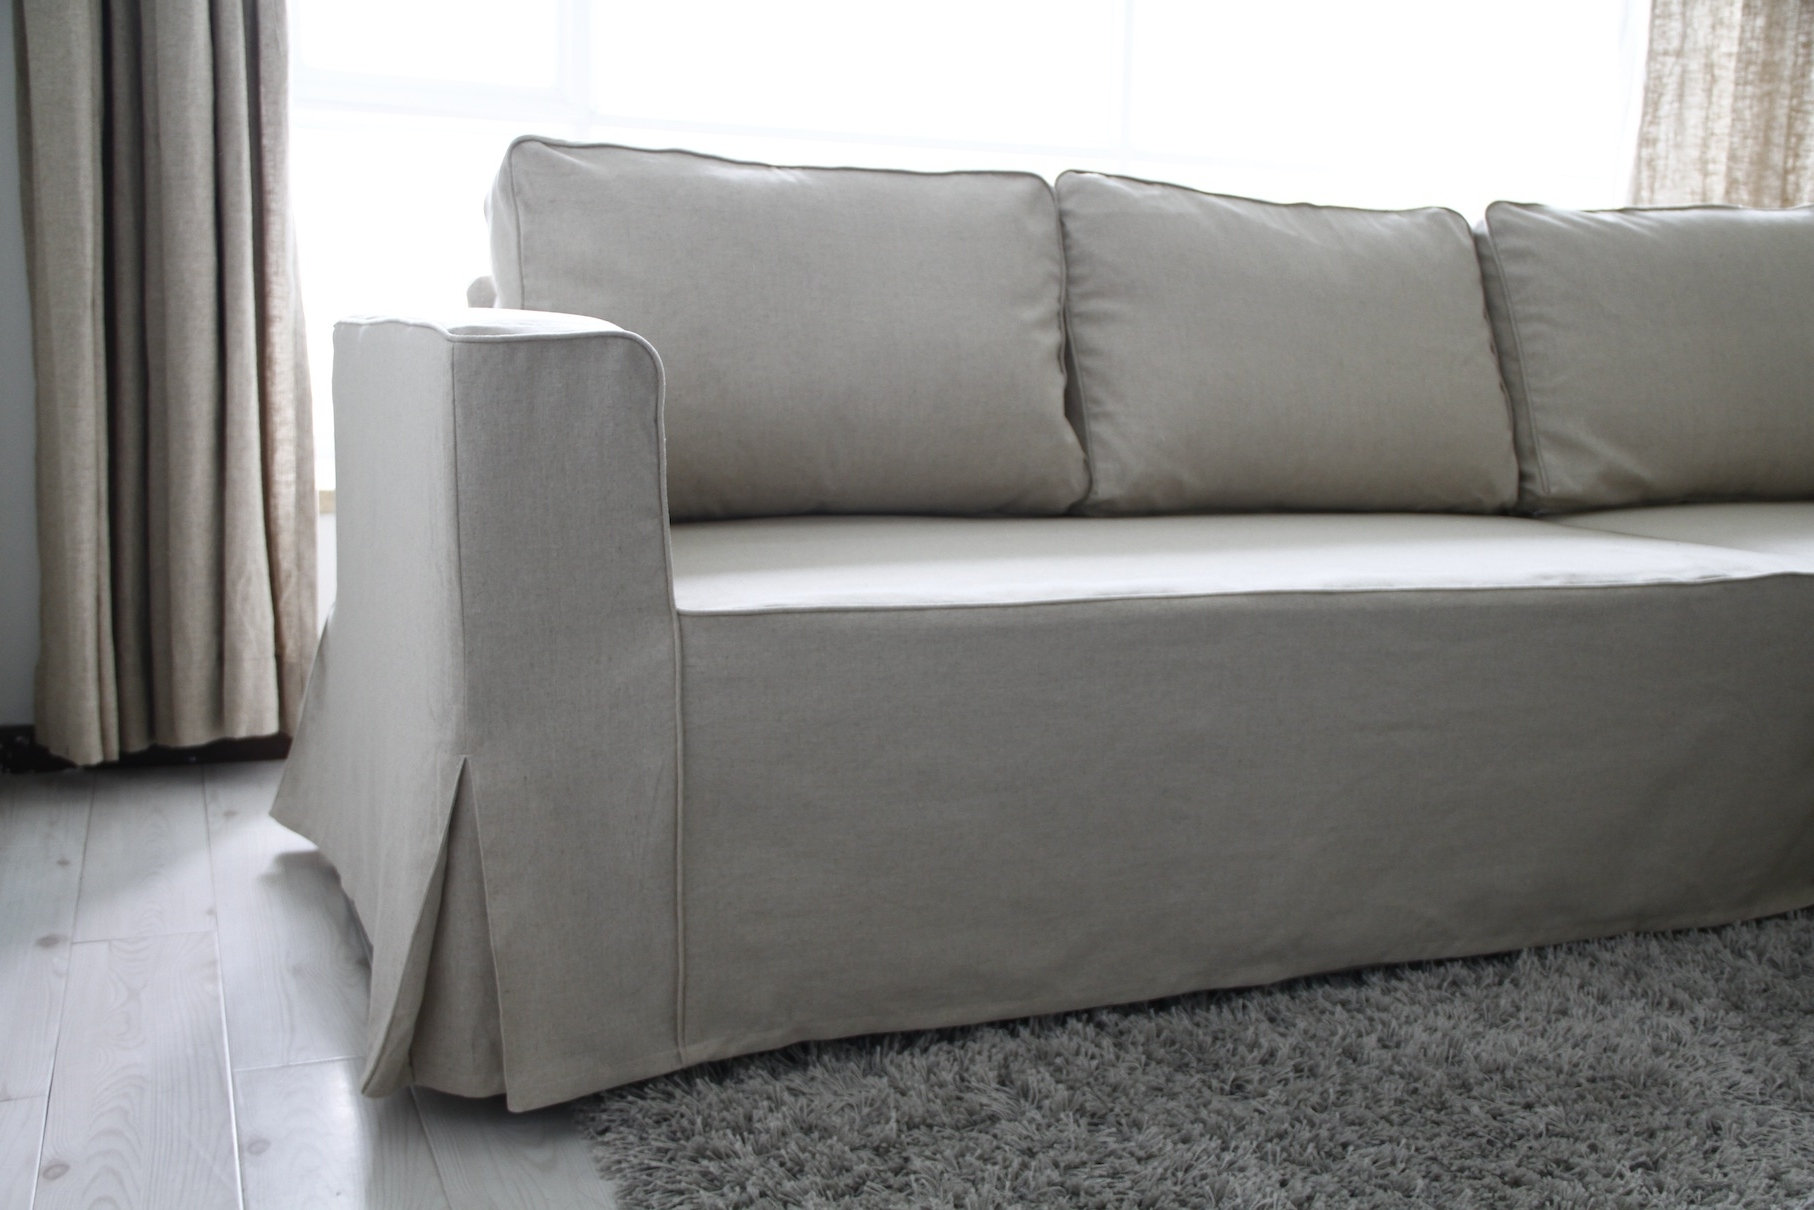 Chaise Lounge Sofa Covers With Regard To Widely Used Great Chaise Lounge Sofa Covers 57 On Modern Sofa Inspiration With (View 7 of 15)